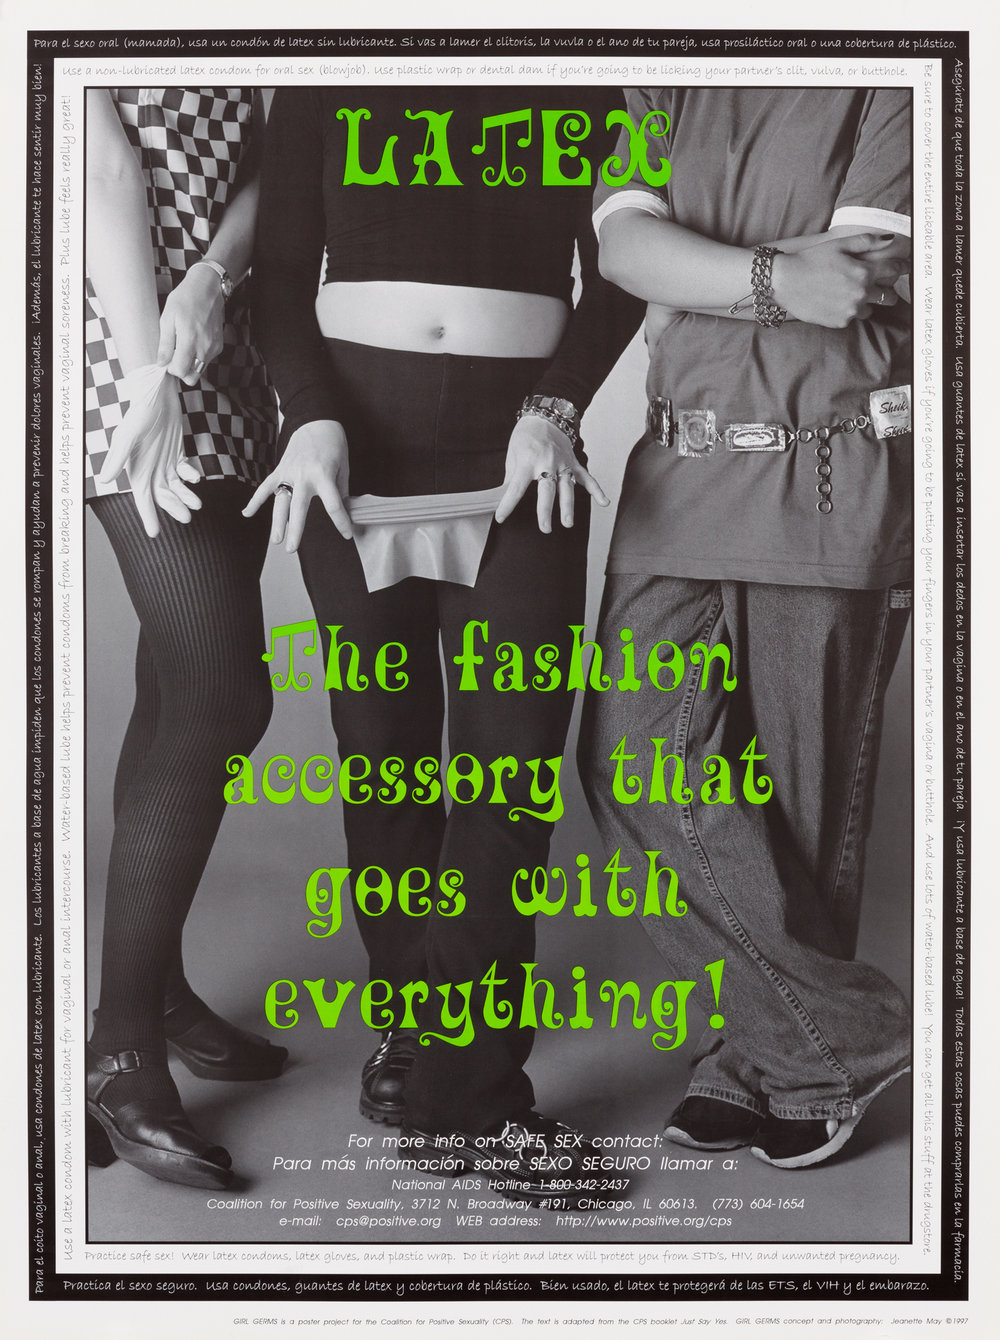 Latex: The fashion accessory that goes with everything!